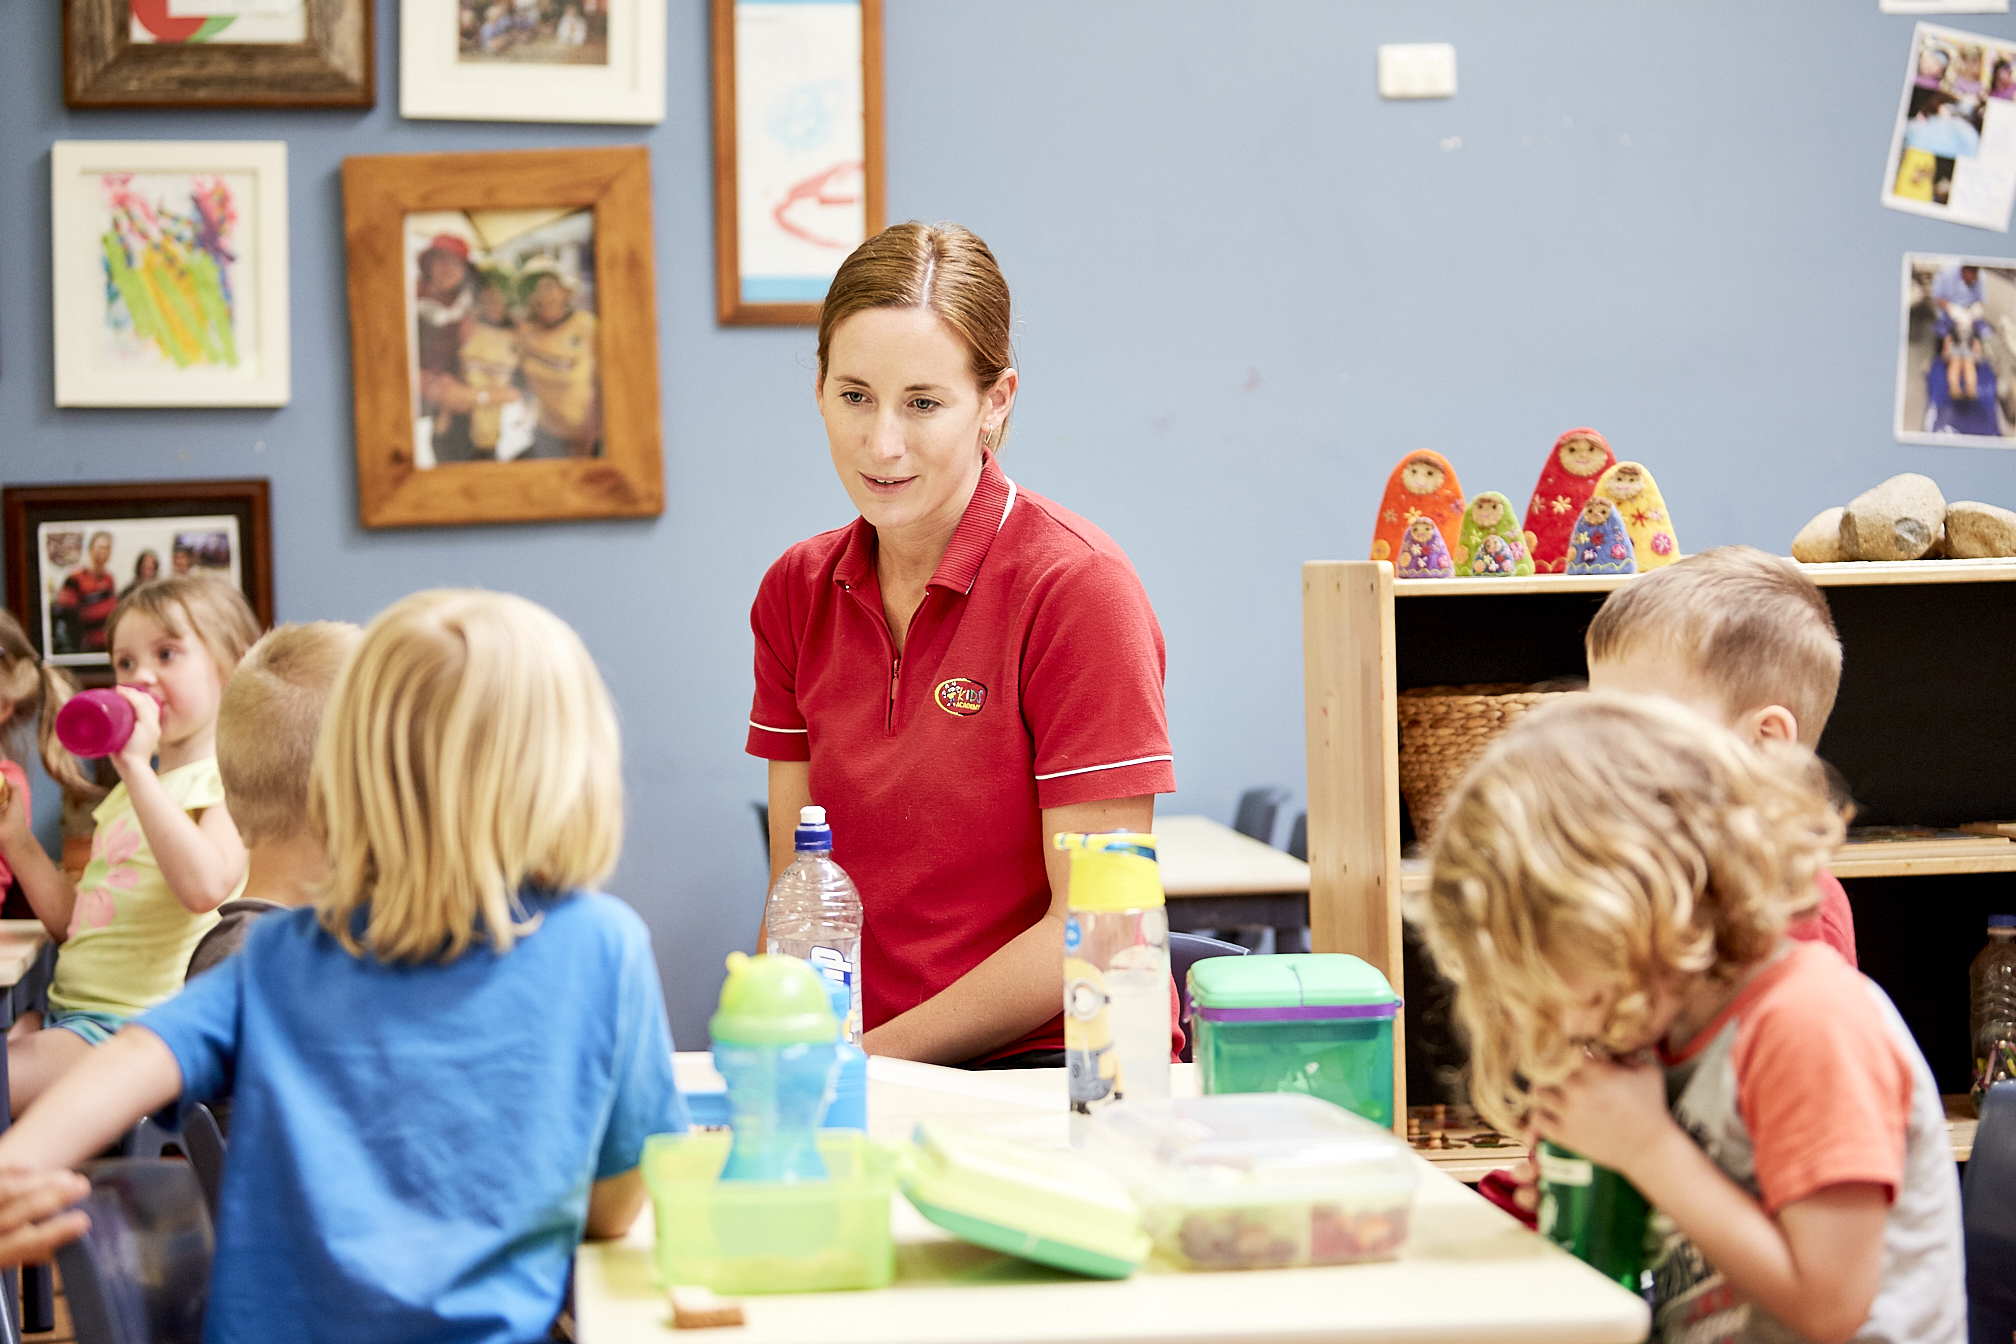 Child care educator interacting with group of children in child care classroom at Kids Academy Erina Heights